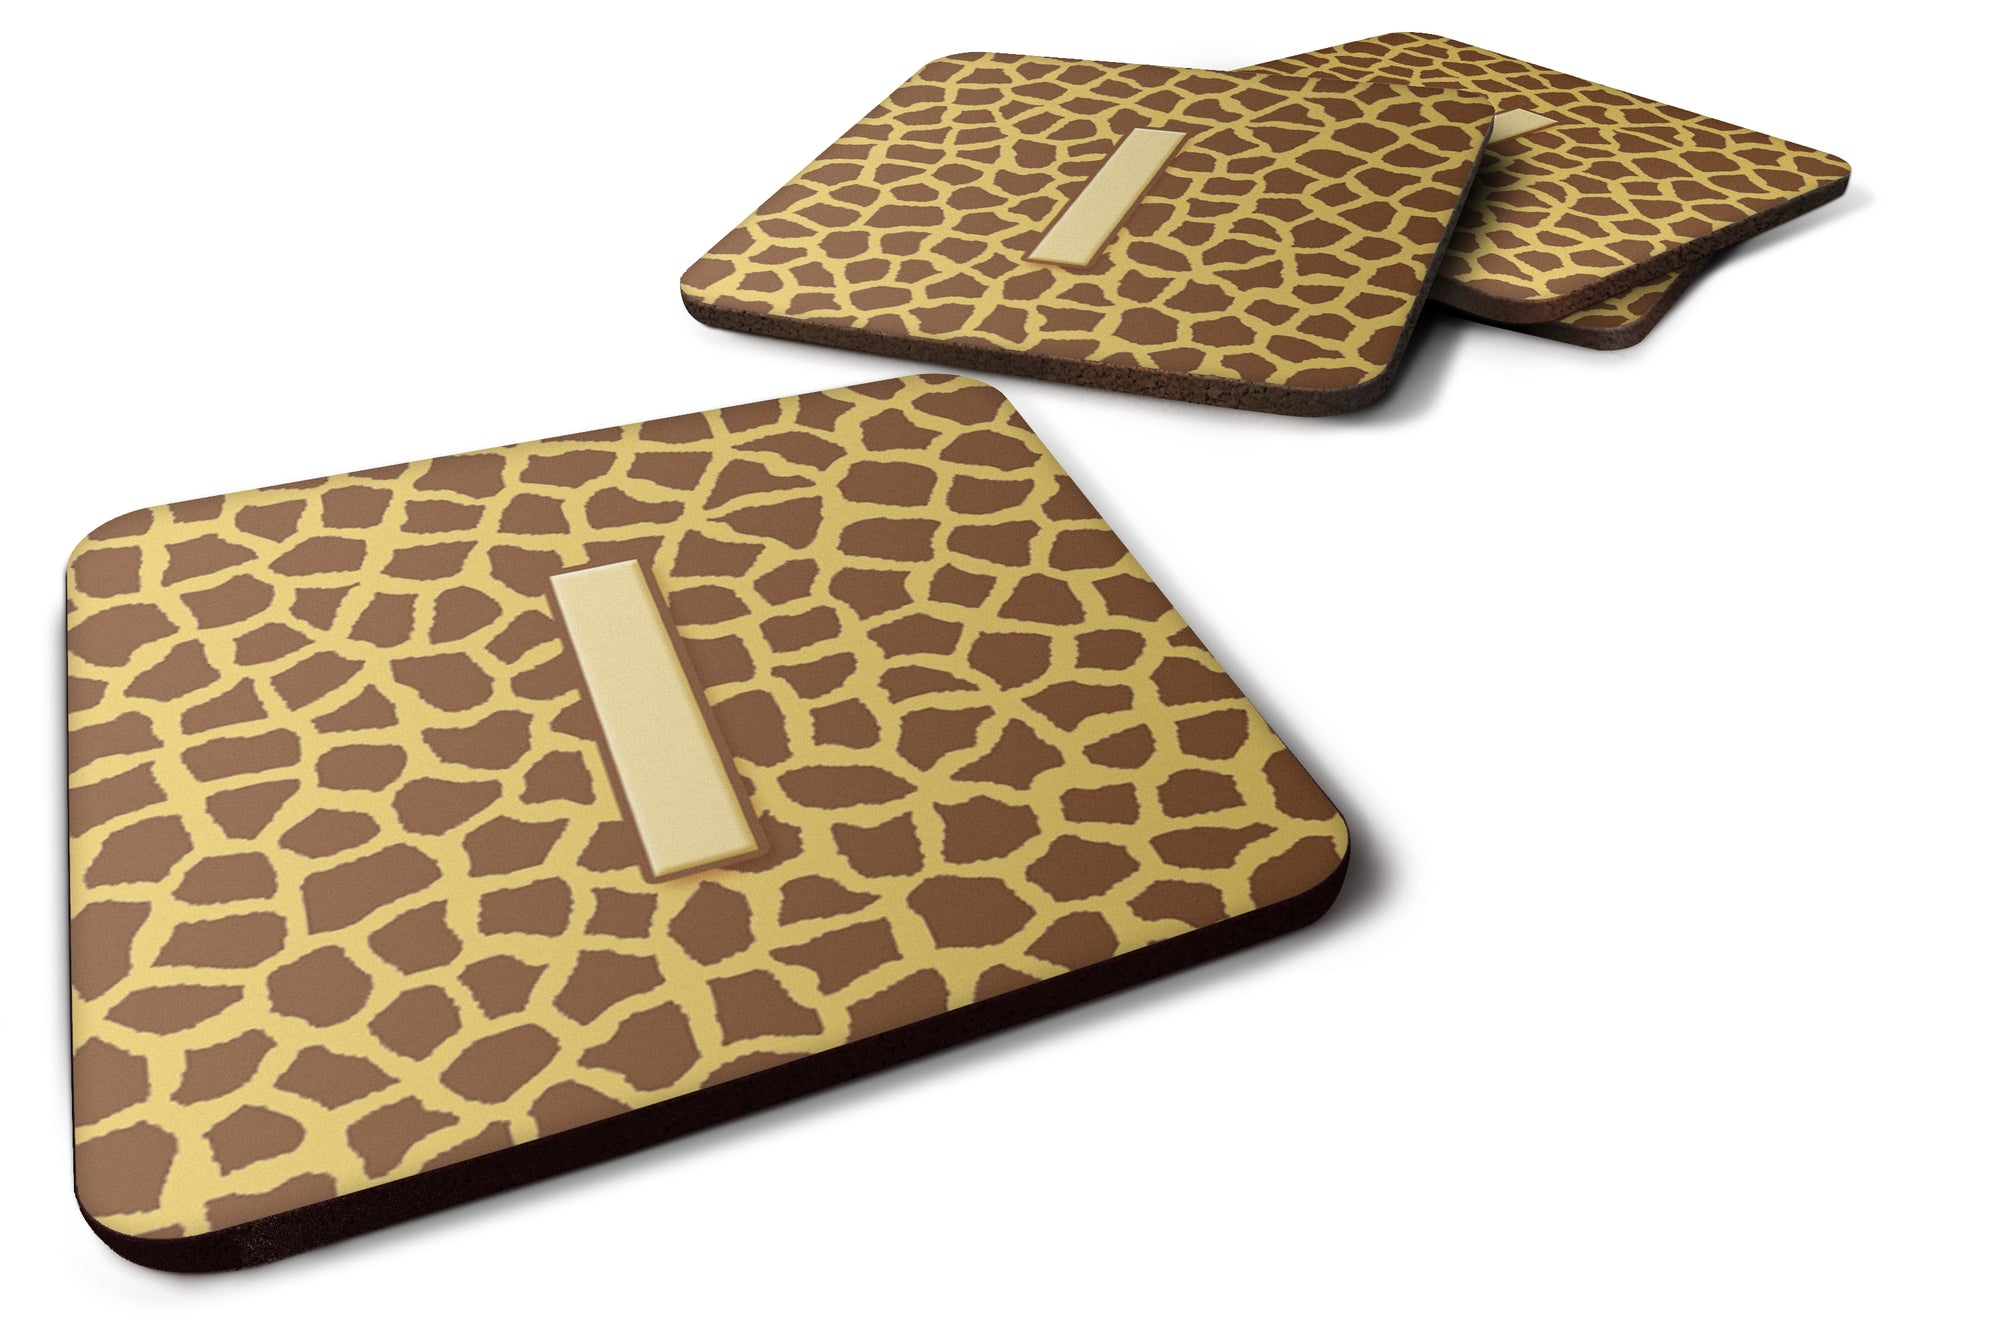 Set of 4 Monogram - Giraffe Foam Coasters Initial Letter I by Caroline's Treasures